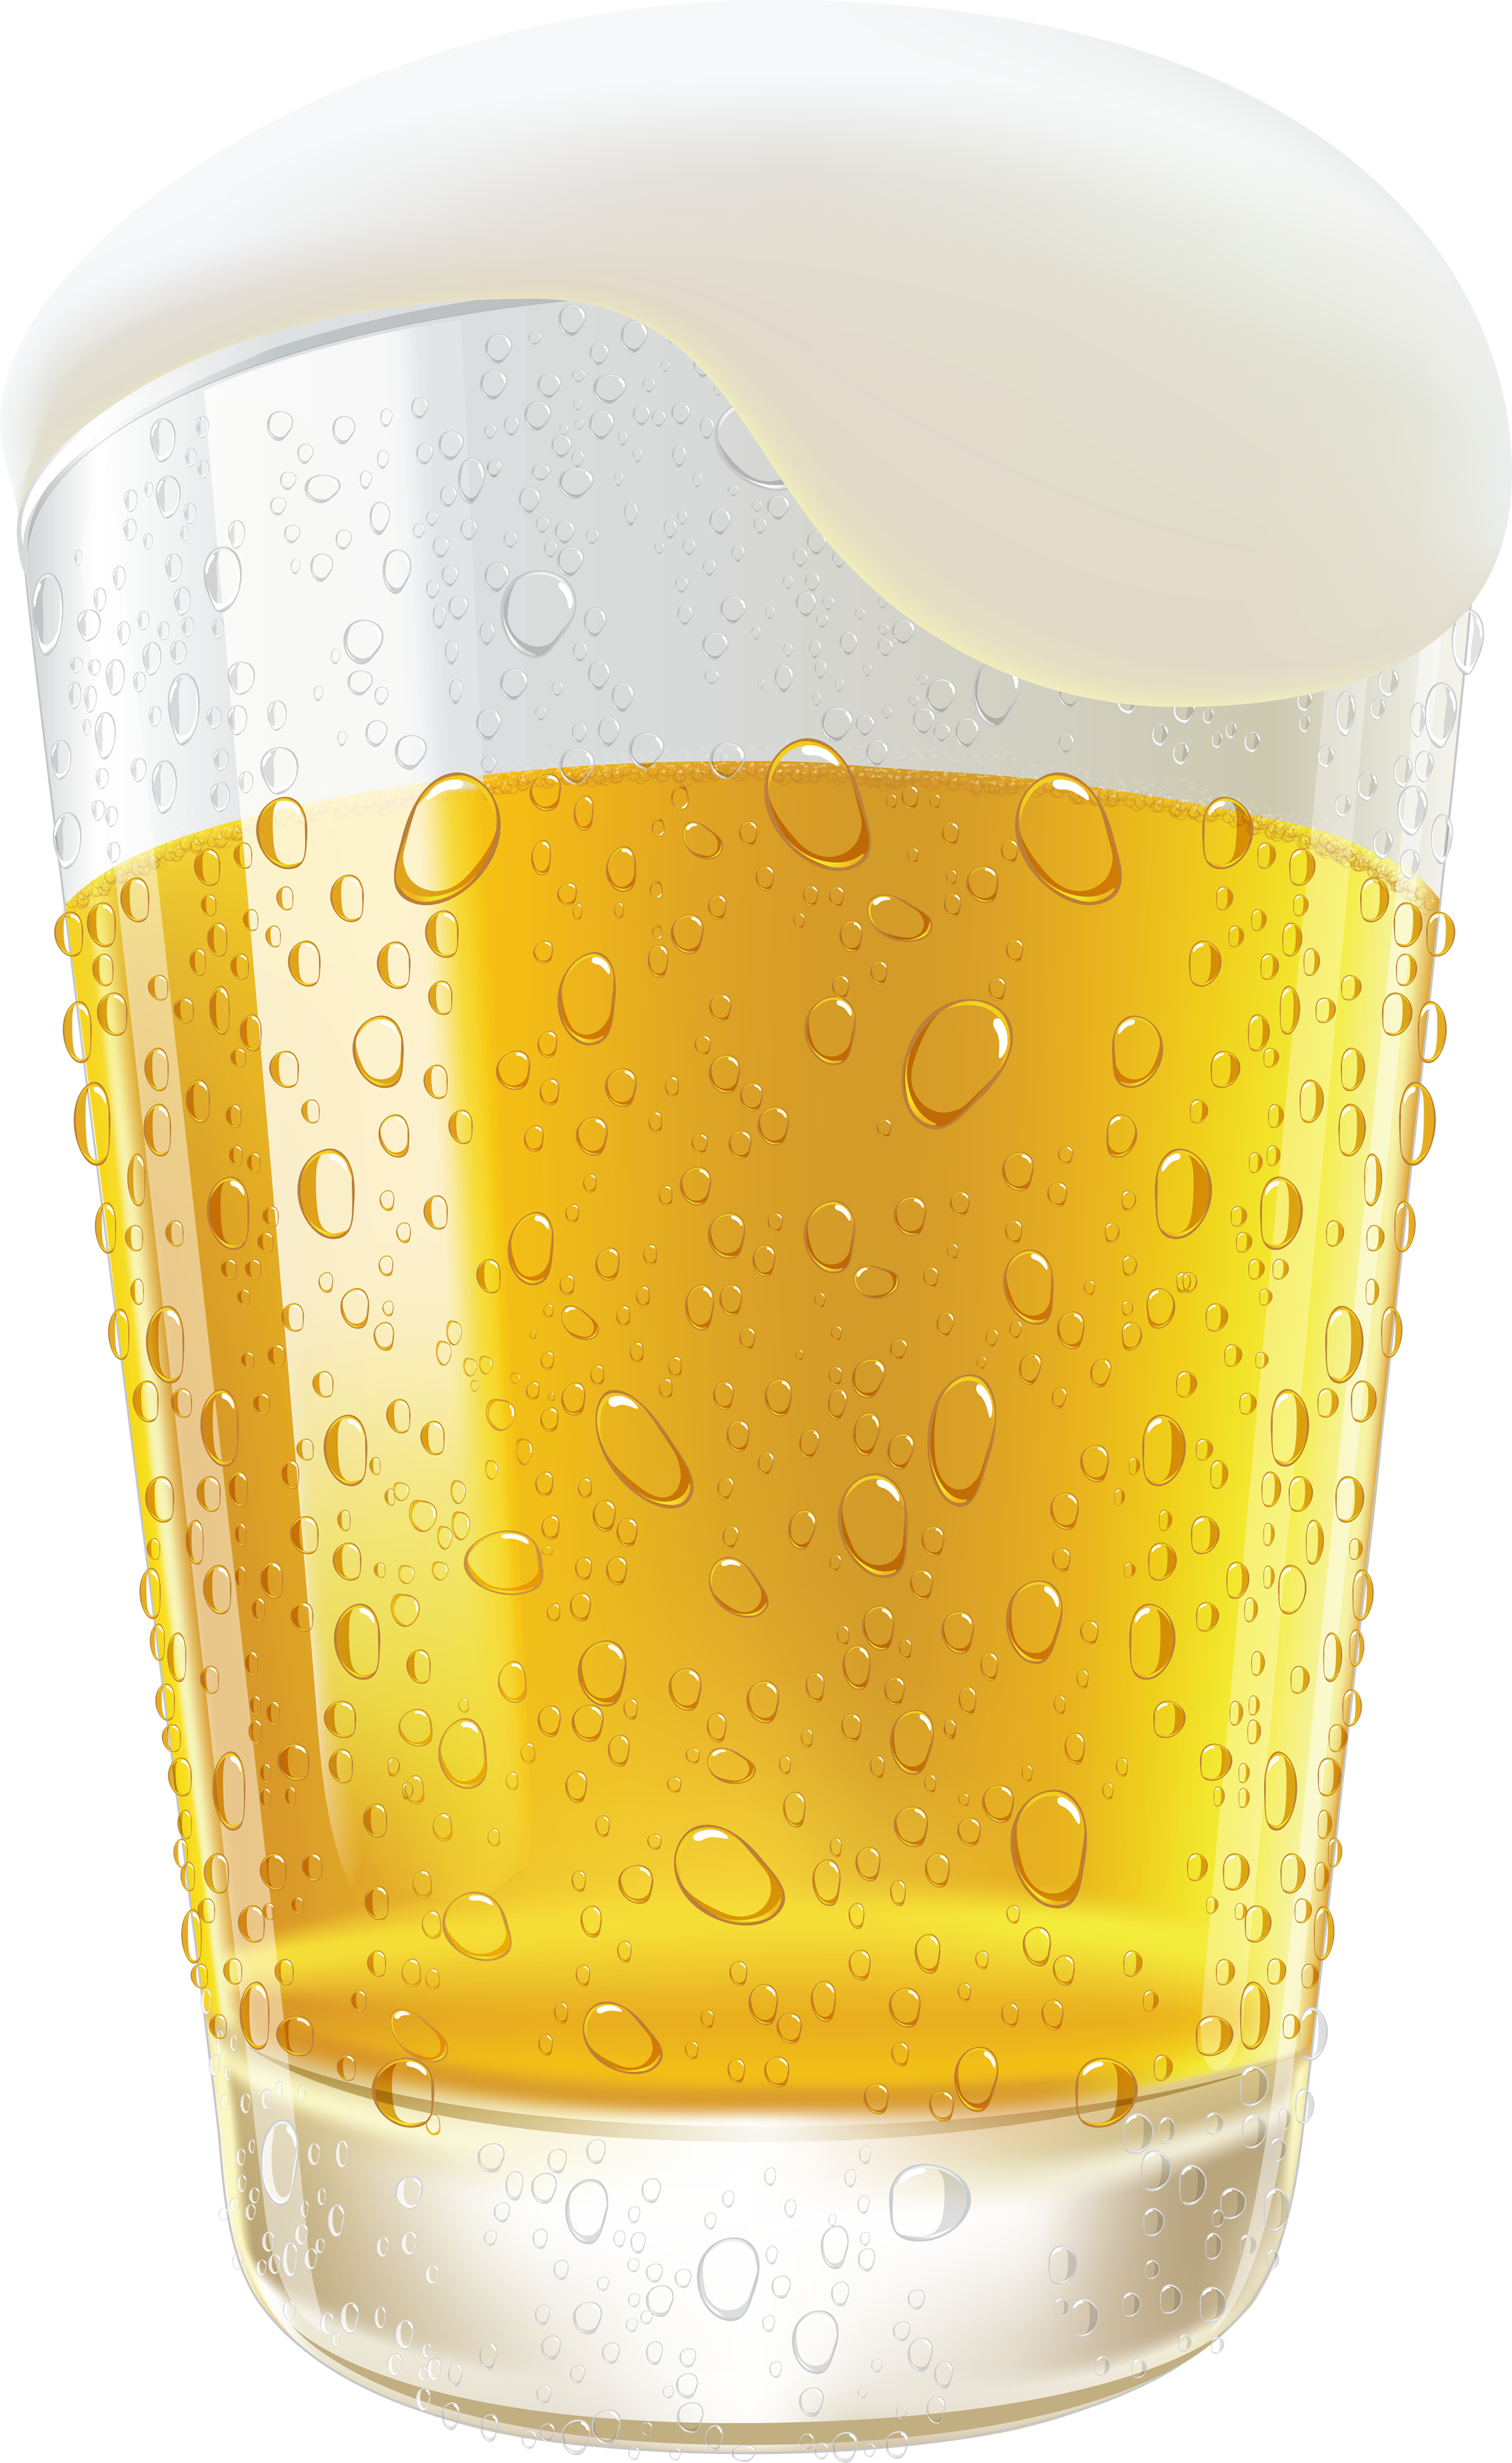 Beer png images free. Hair clipart glass